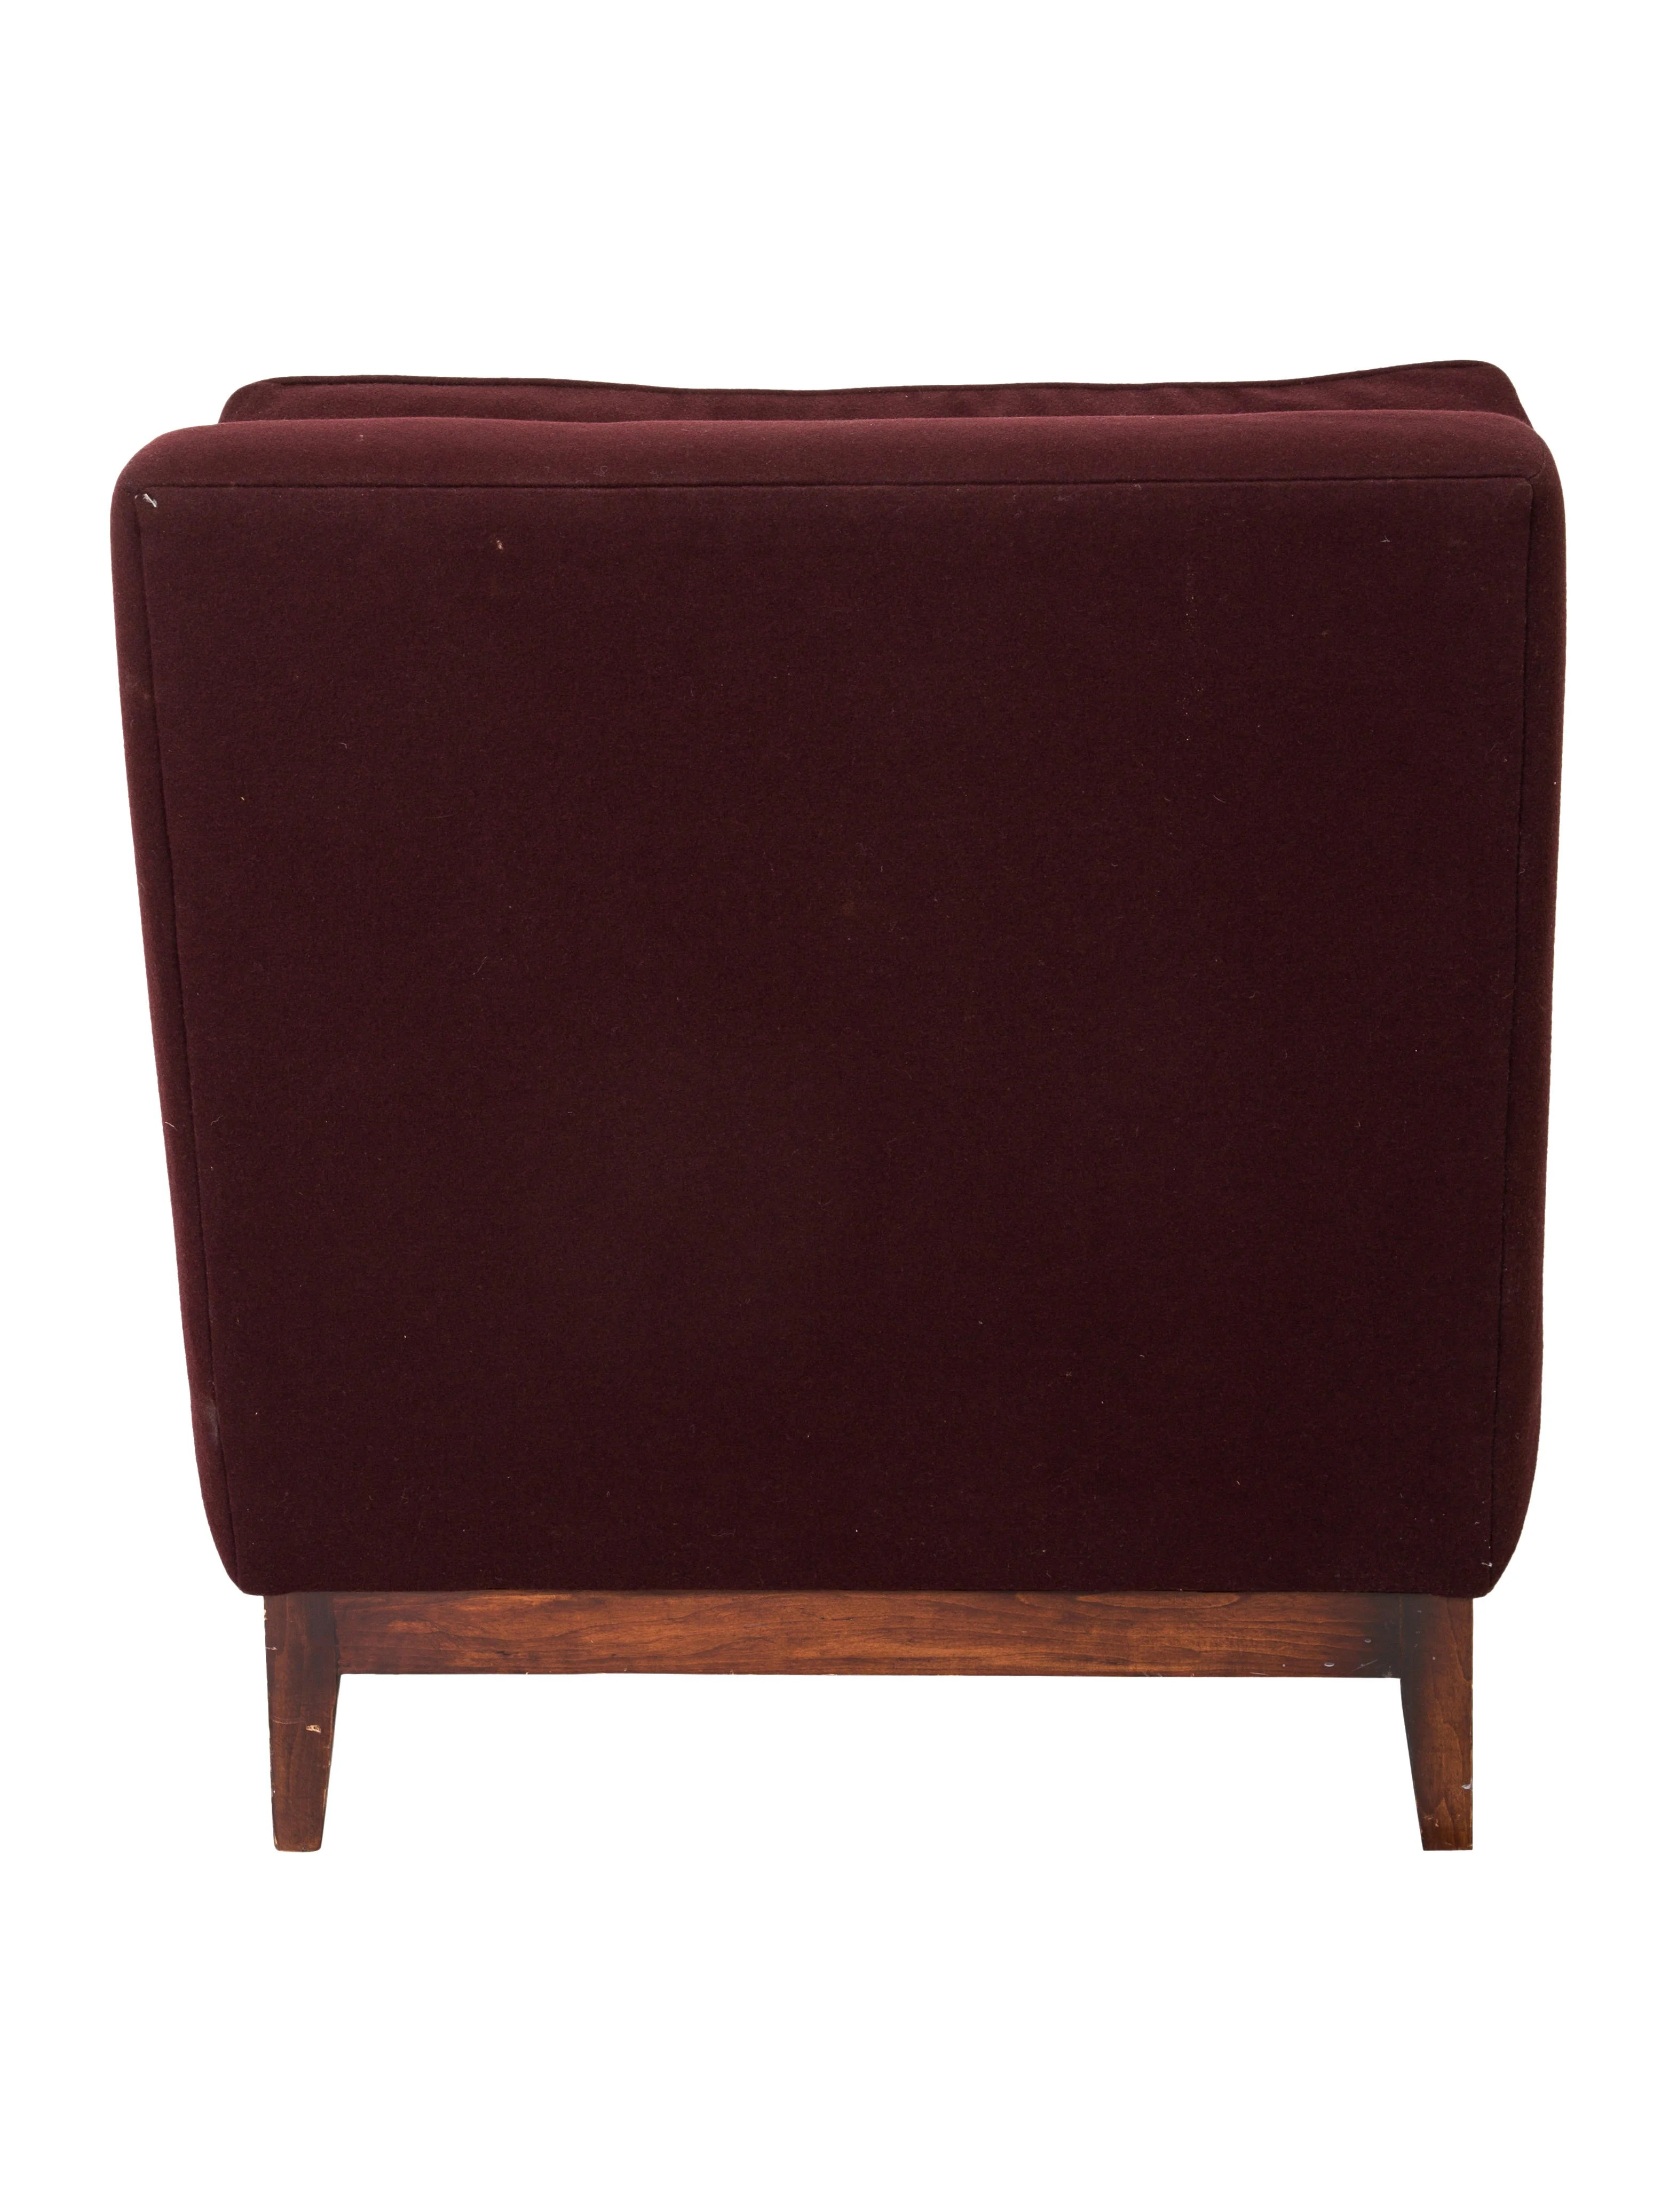 upholstered slipper chair avington high amazon chairs furniture chair20388 the